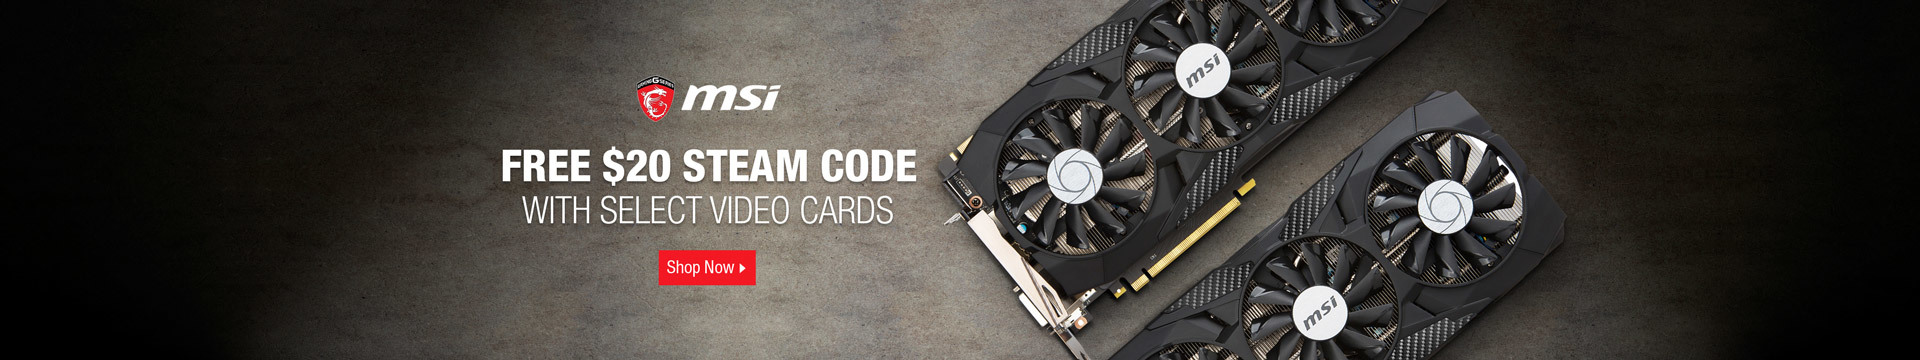 Free $20 steam code with select video cards